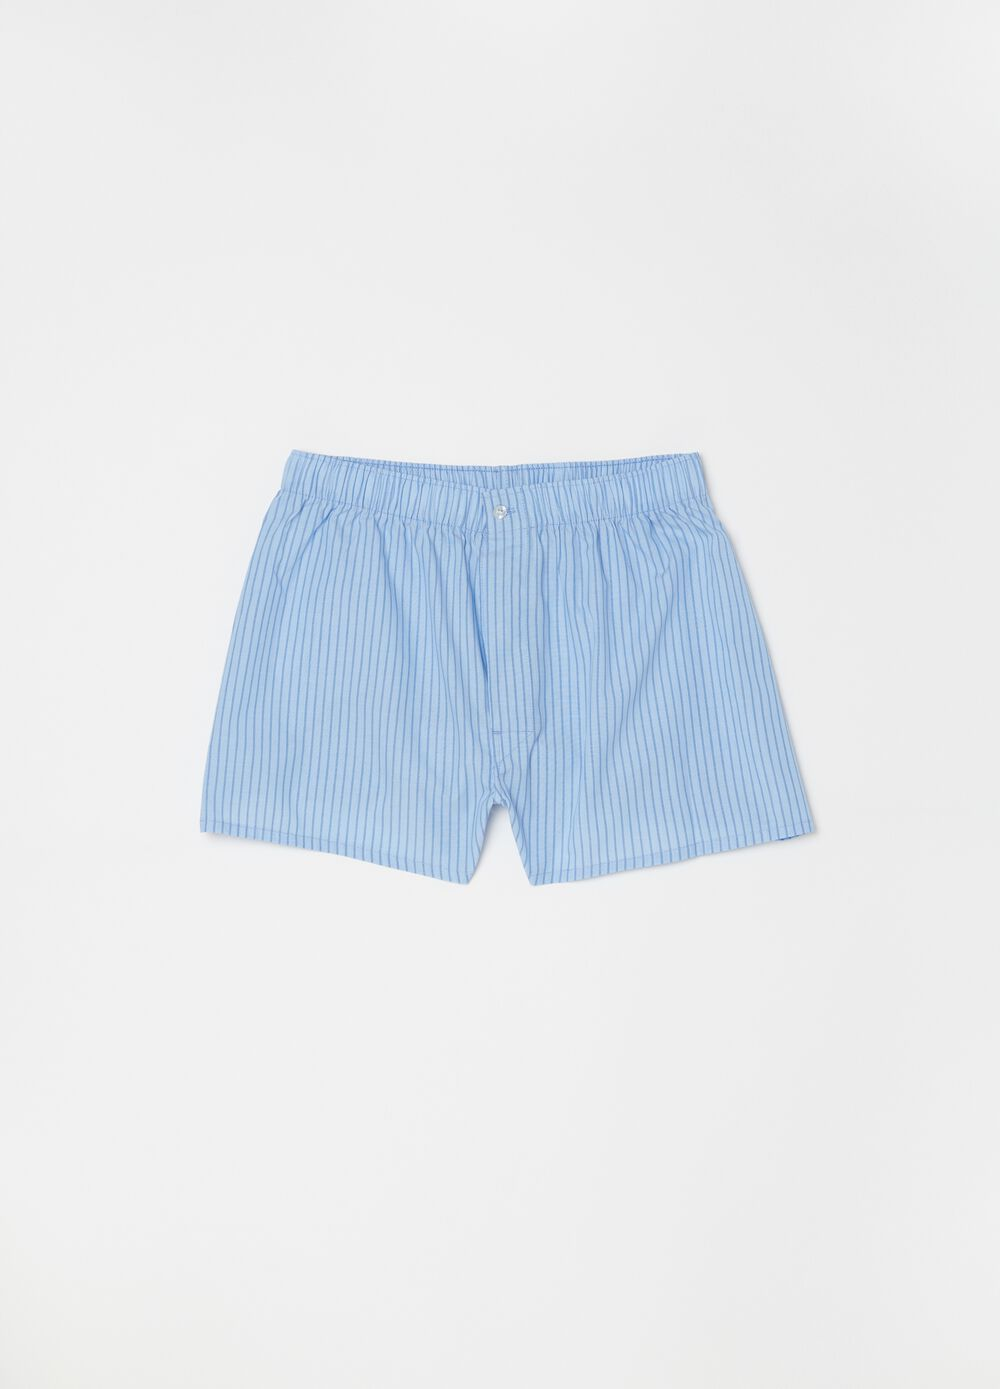 Patterned boxer shorts in 100% cotton